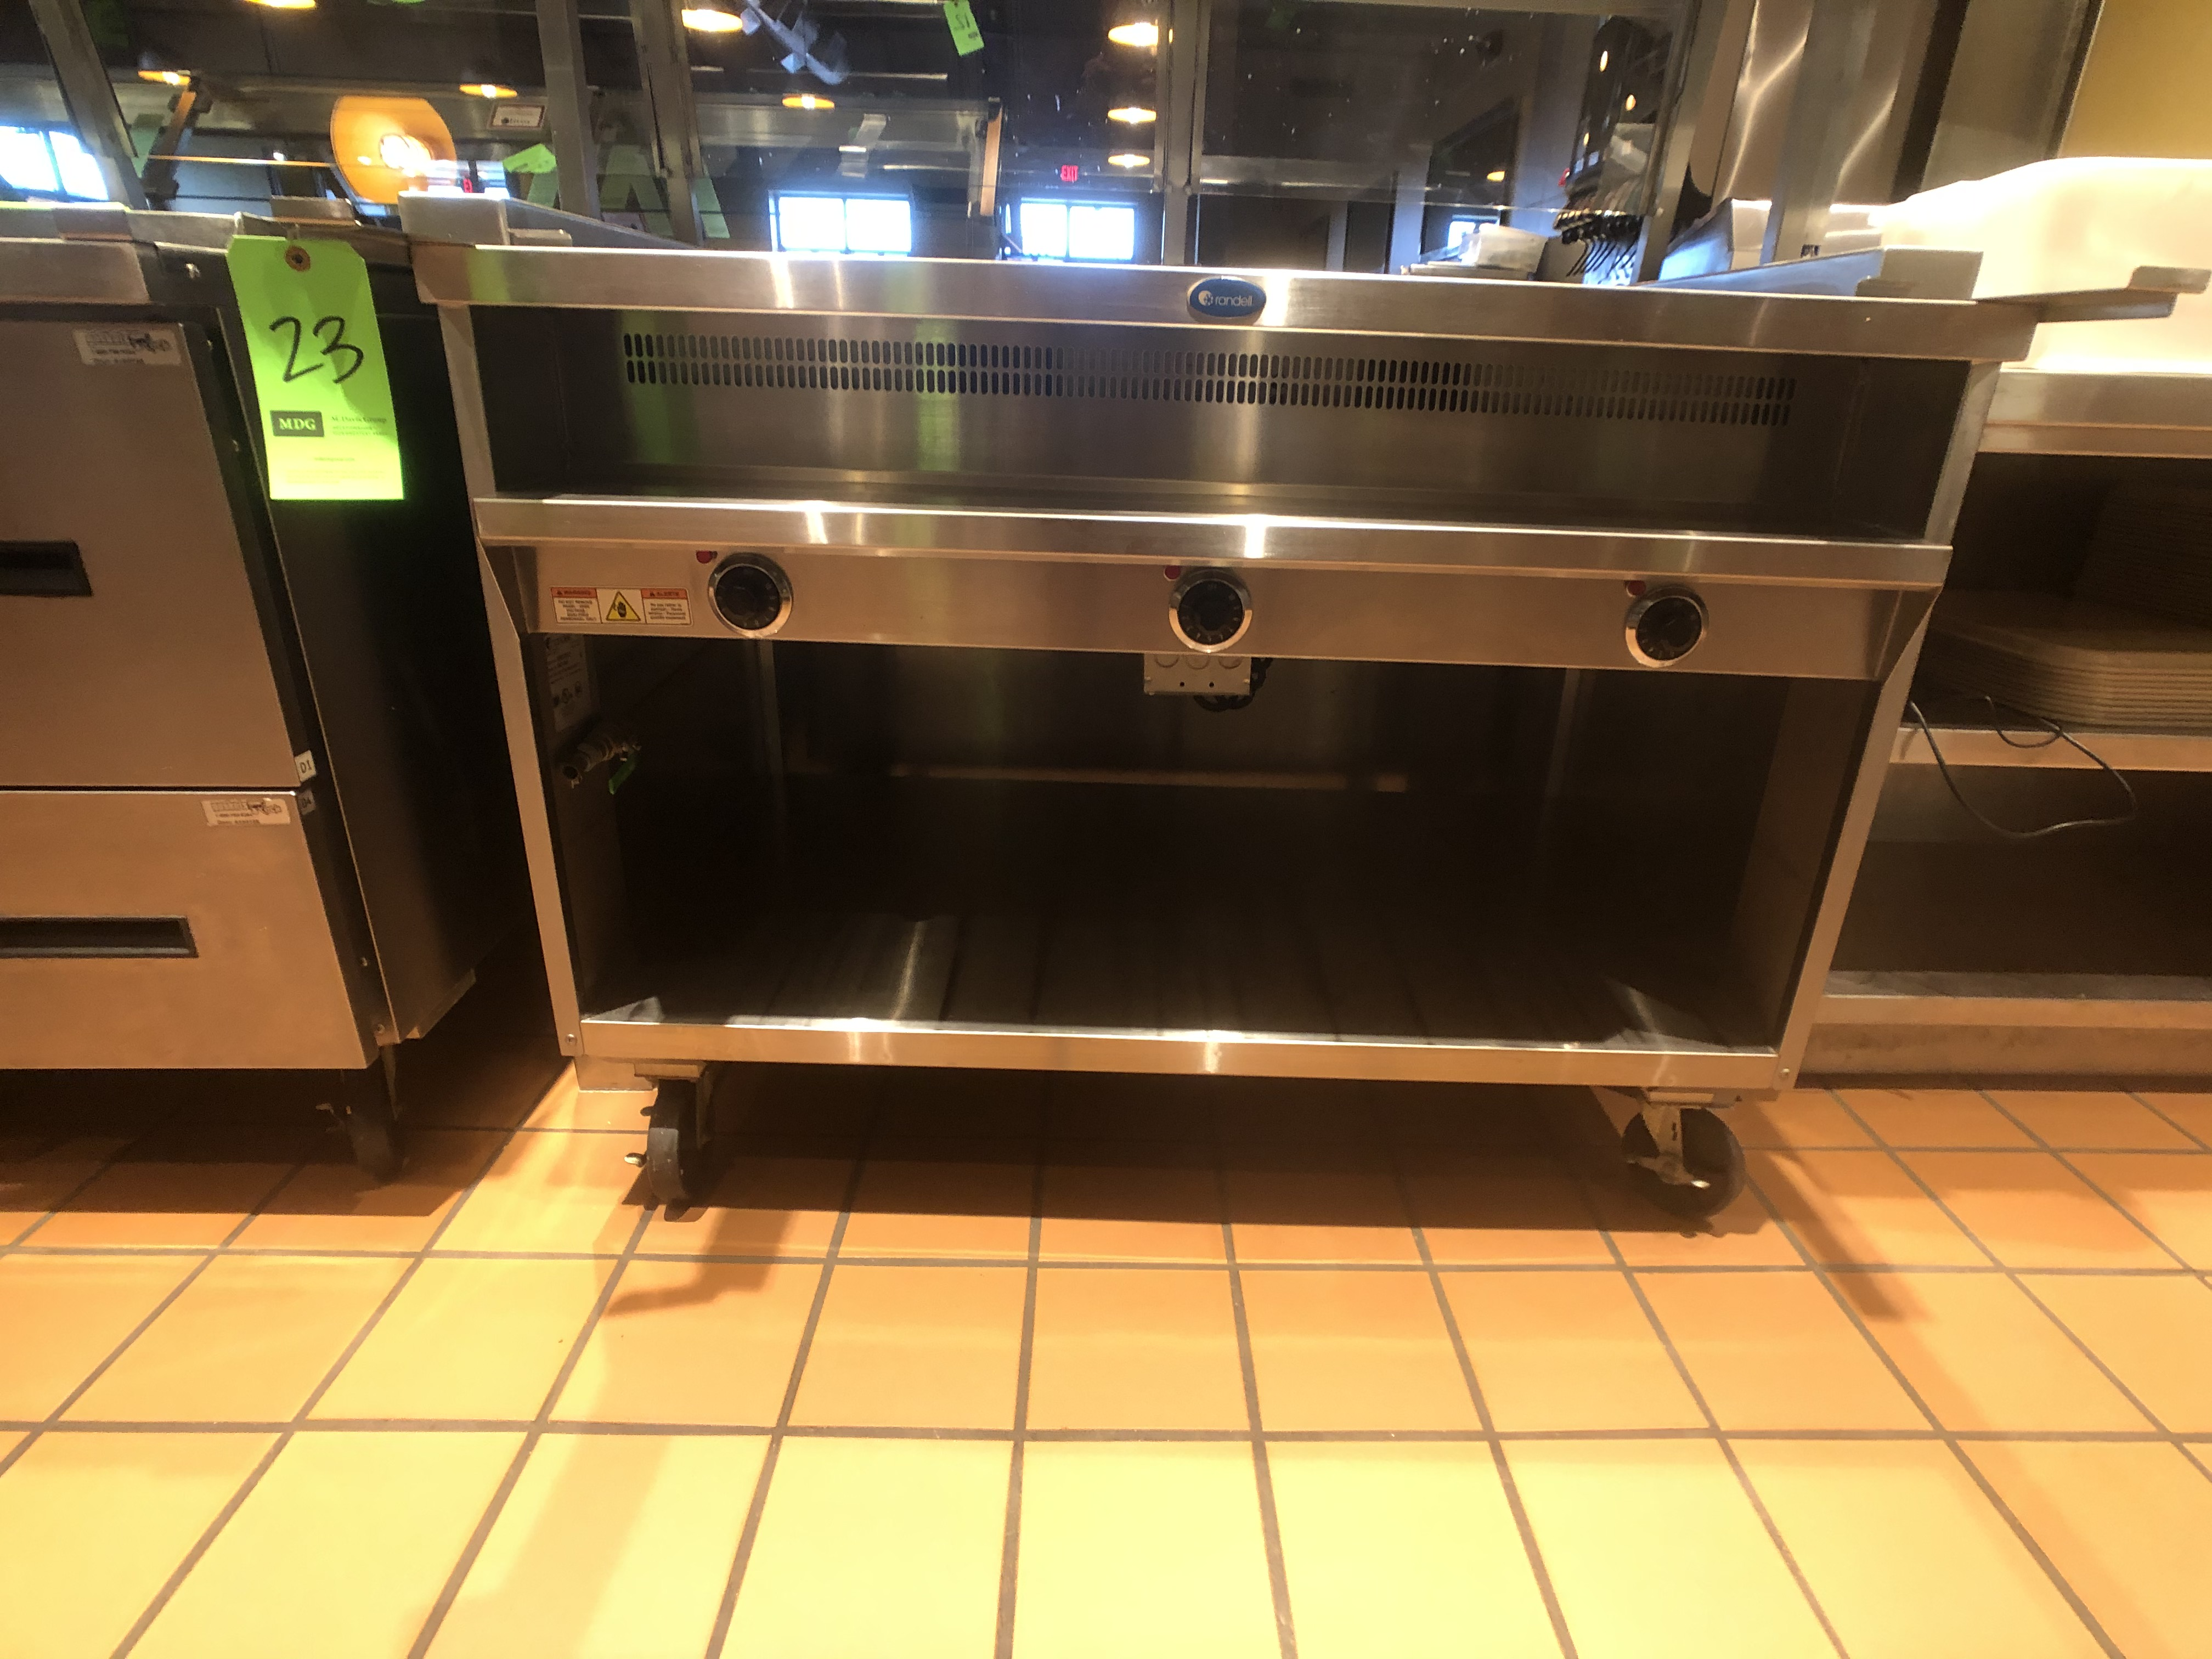 """Randell Open Base Electric Hot Food Table, Model 3613-240, S/N W1041760-1, 48"""" W x 33"""" D x 36"""" H - Image 3 of 4"""